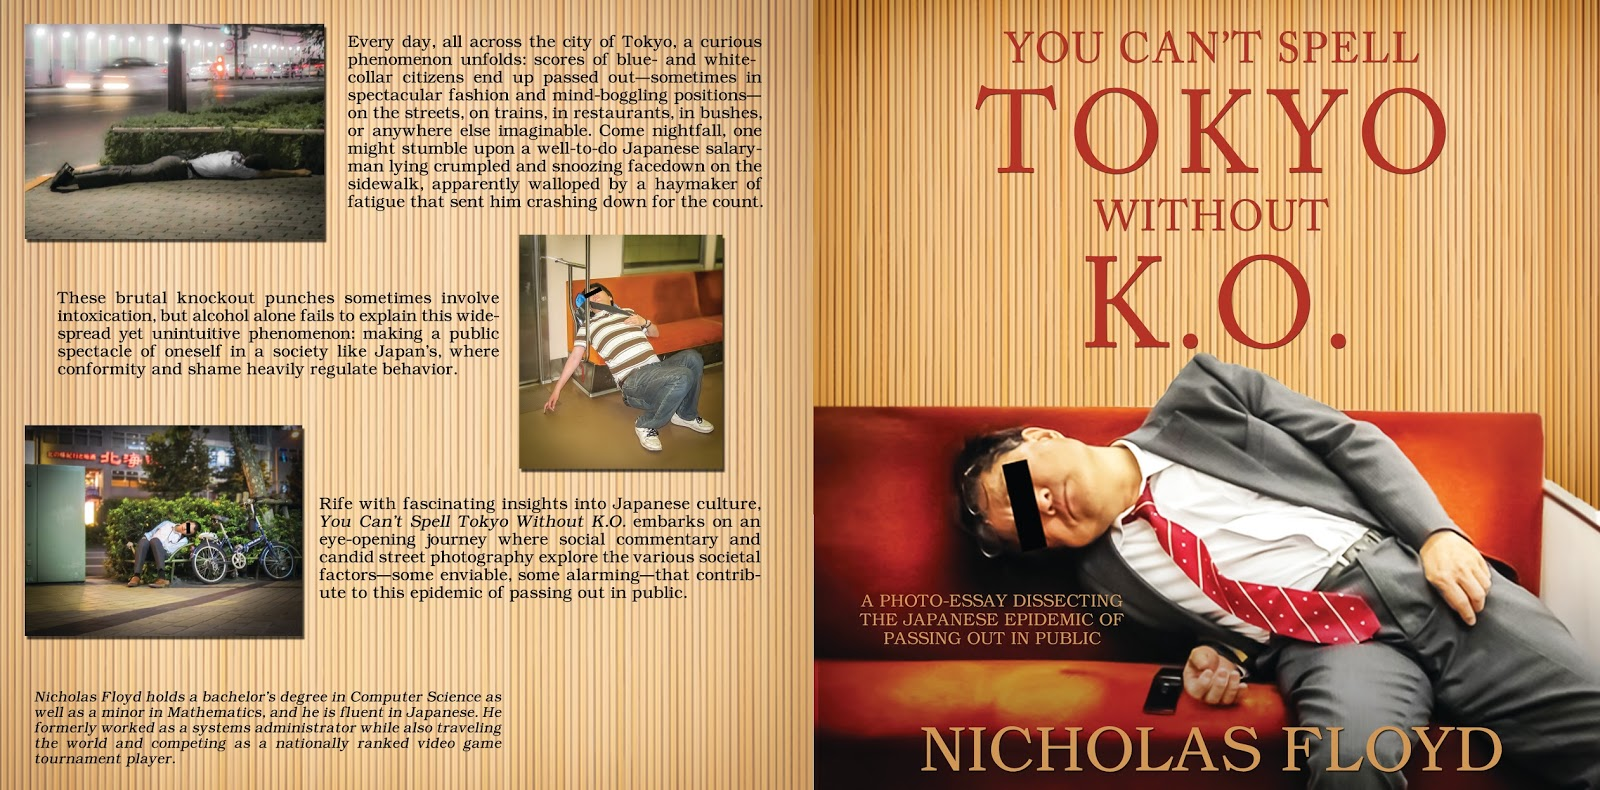 new cover design you can t spell tokyo out k o  please join me in congratulating nicholas floyd on the publication of his second nonfiction book you can t spell tokyo out k o a photo essay